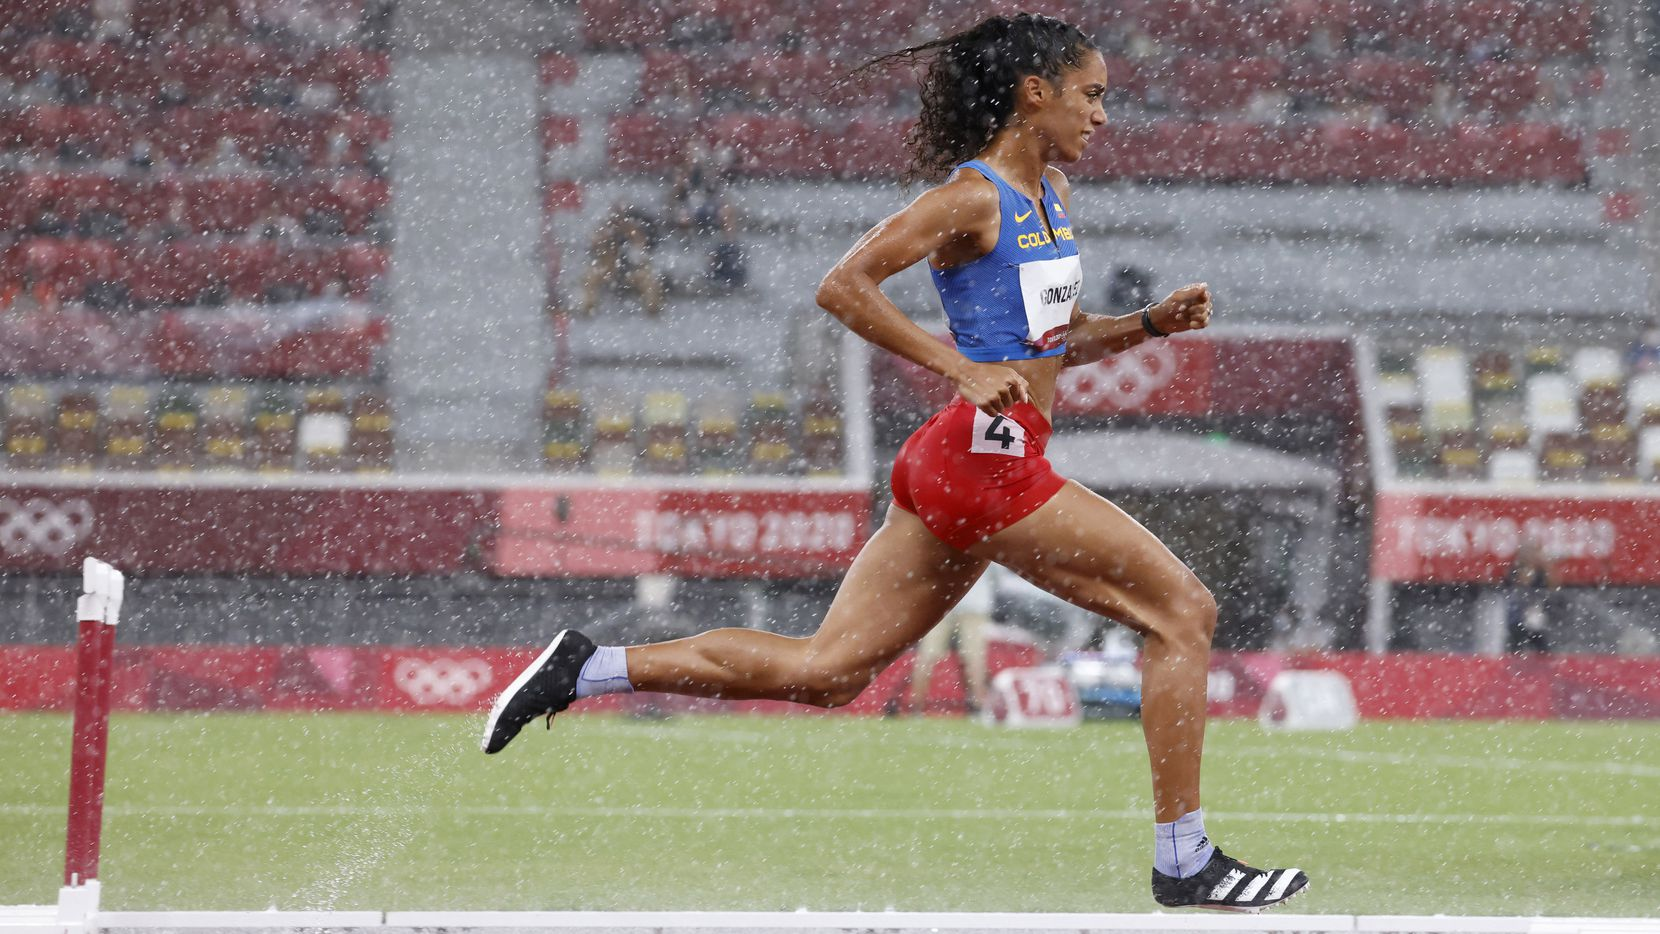 Columbia's Melissa Gonzalez competes in the women's 400 meter hurdles semifinal during the postponed 2020 Tokyo Olympics at Olympic Stadium, on Monday, August 2, 2021, in Tokyo, Japan. Gonzalez finished with a time of 57.47 seconds and did not advance to the final.